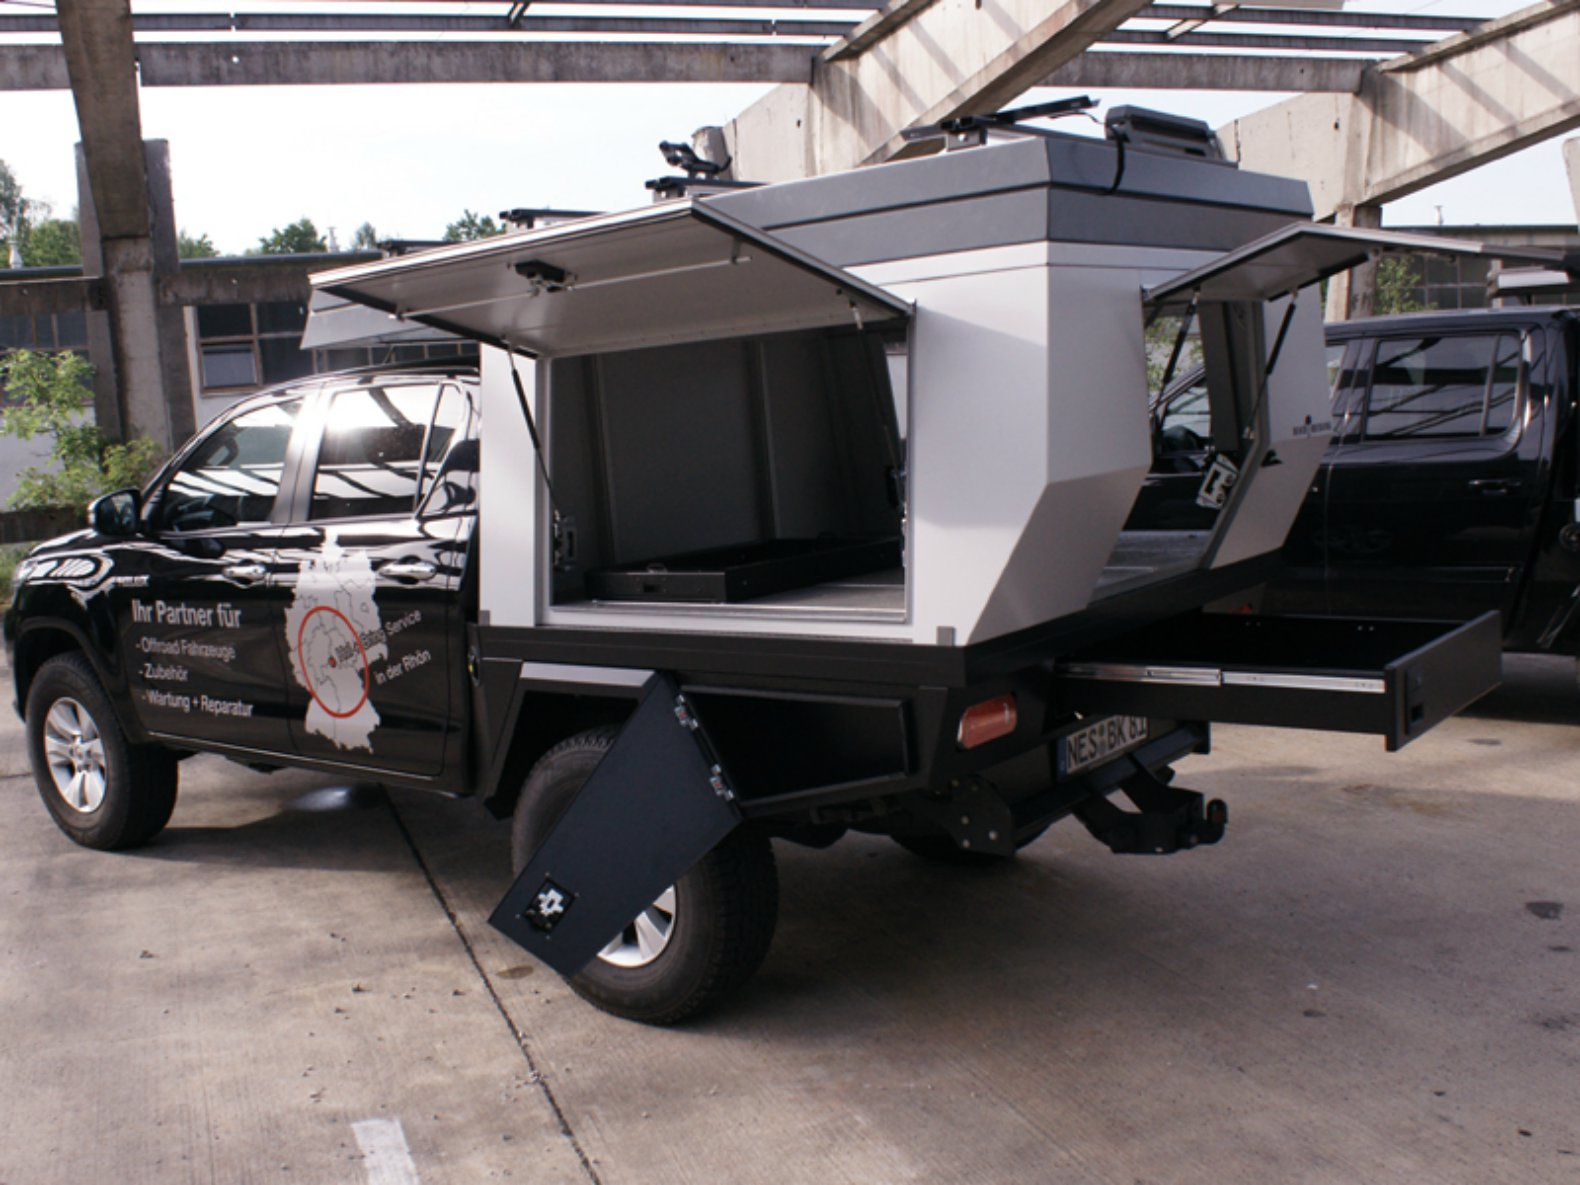 This Pop Up Camper Transforms Any Truck Into A Tiny Mobile Home In